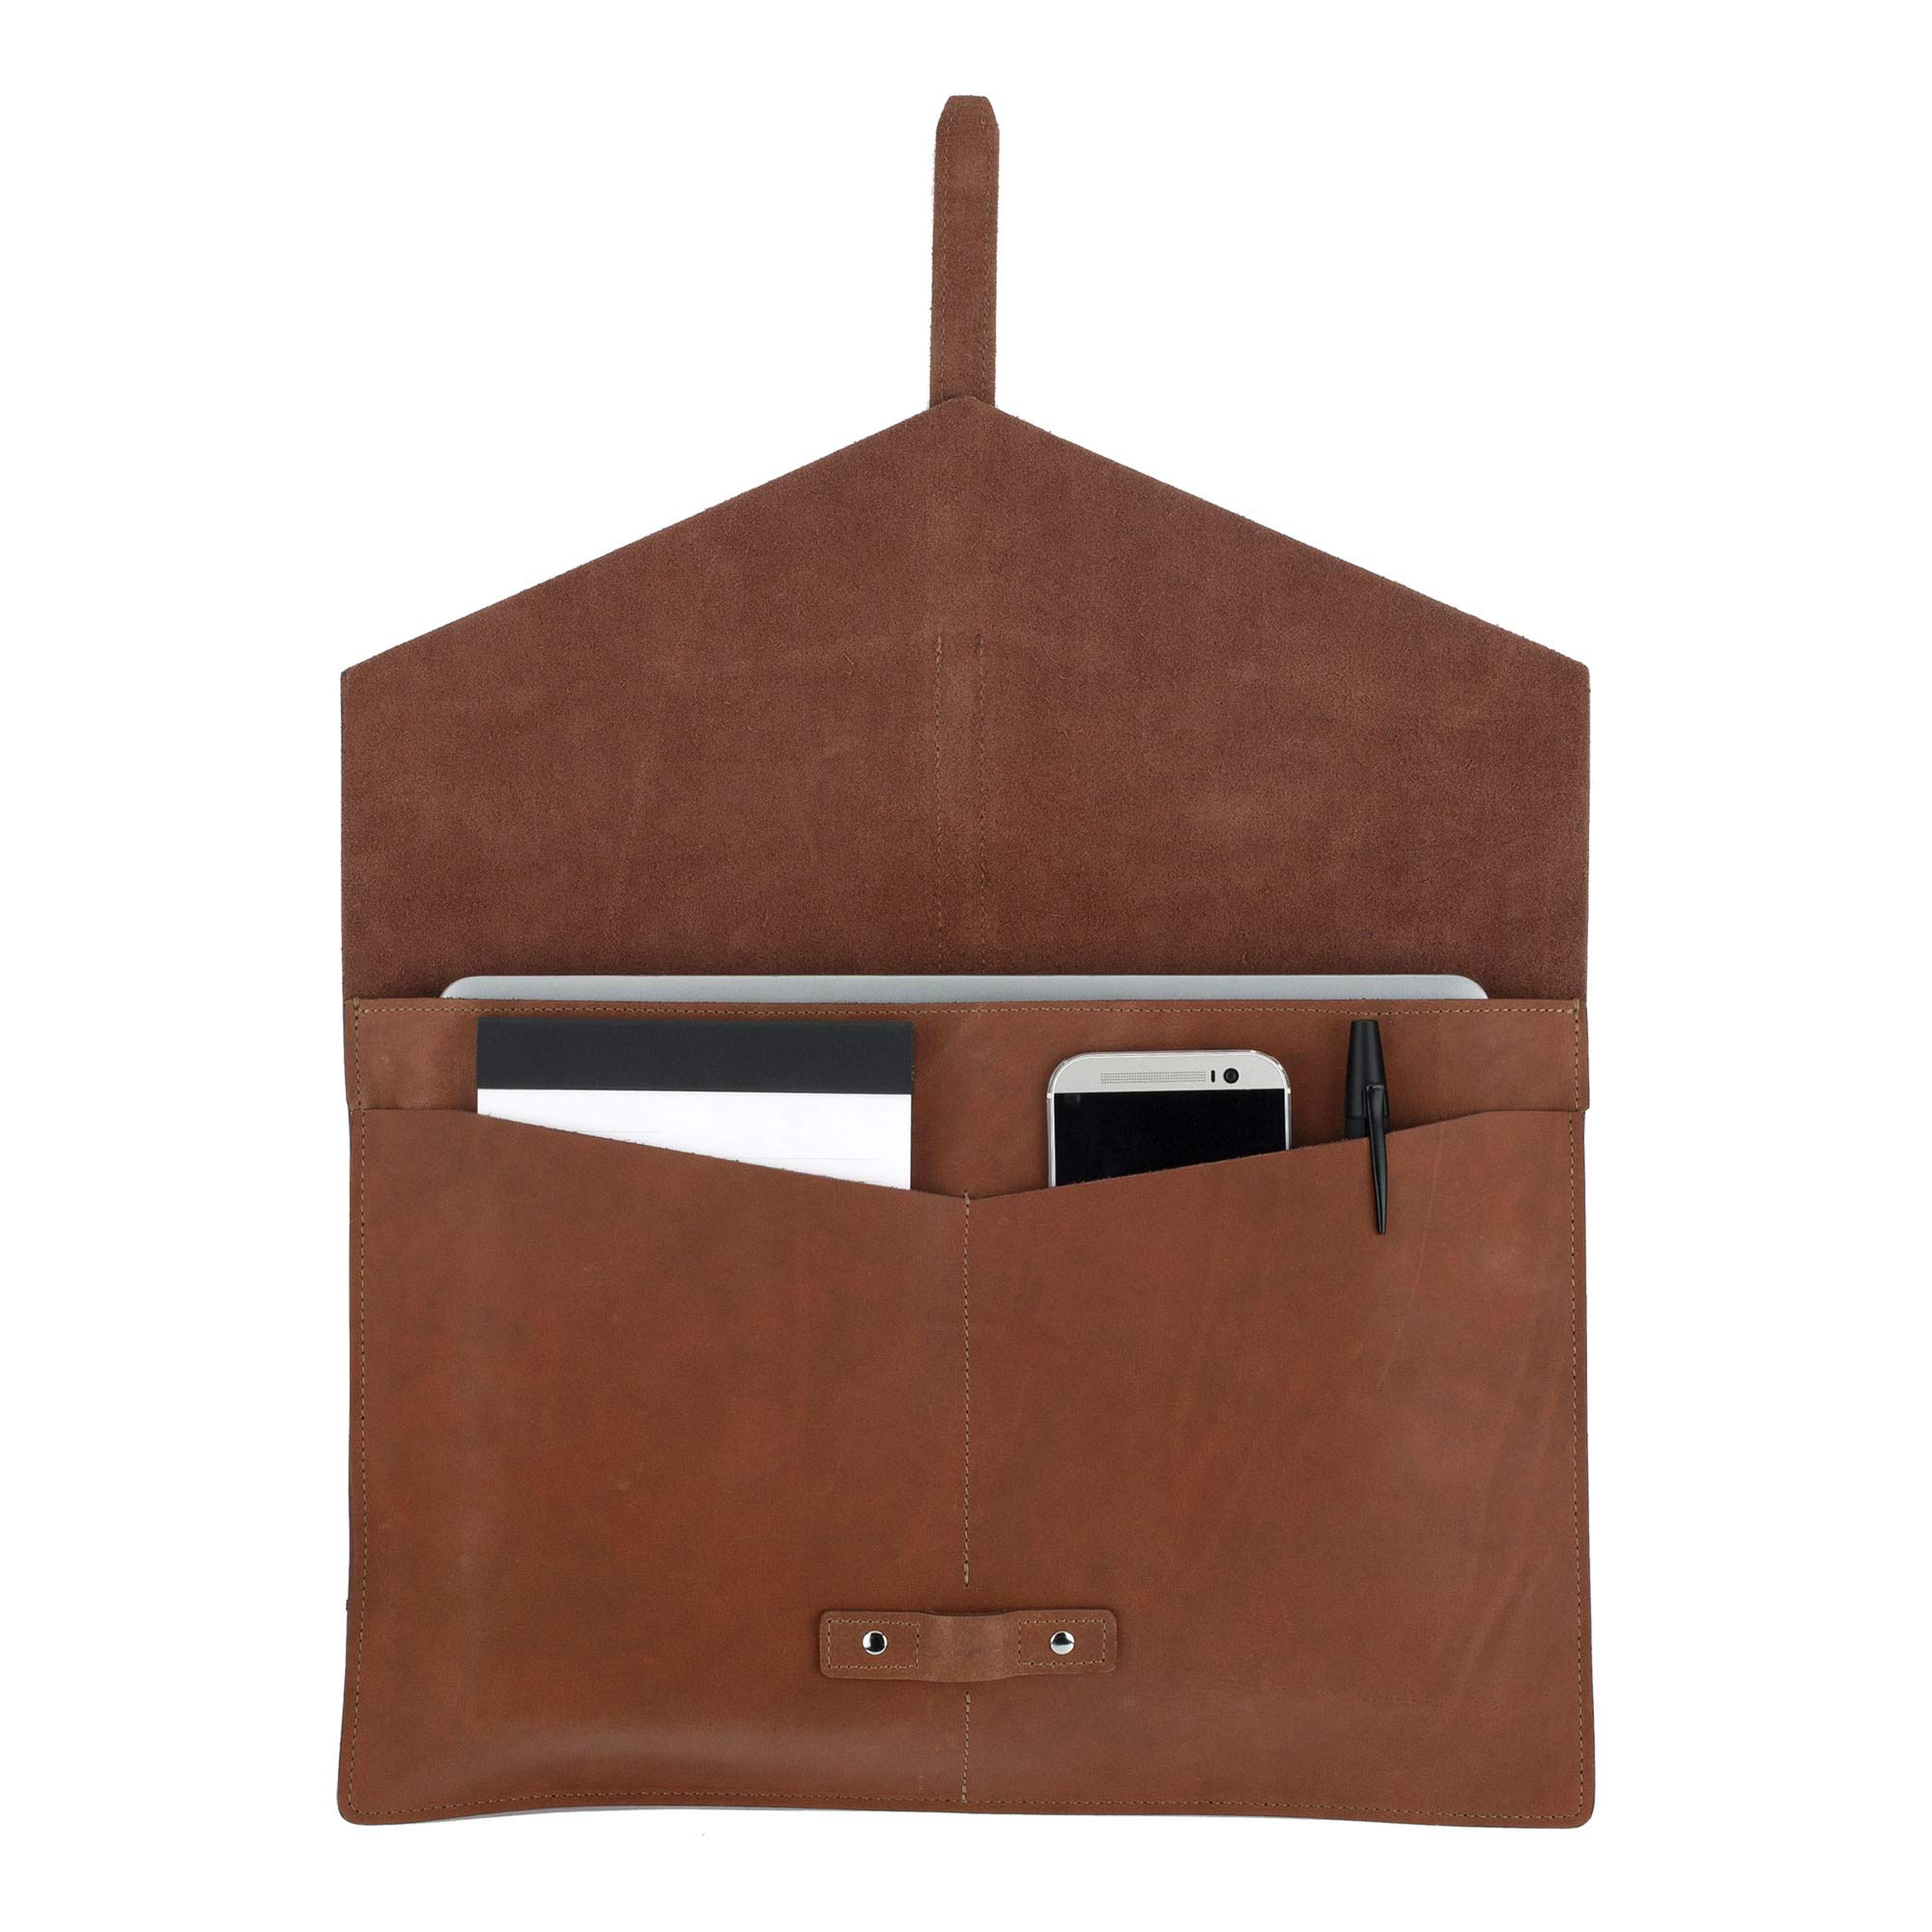 SLATE COLLECTION Belltown Small Laptop Sleeve, Full-Grain Leather (Cognac, fits 13'' Laptop) by SLATE COLLECTION (Image #2)